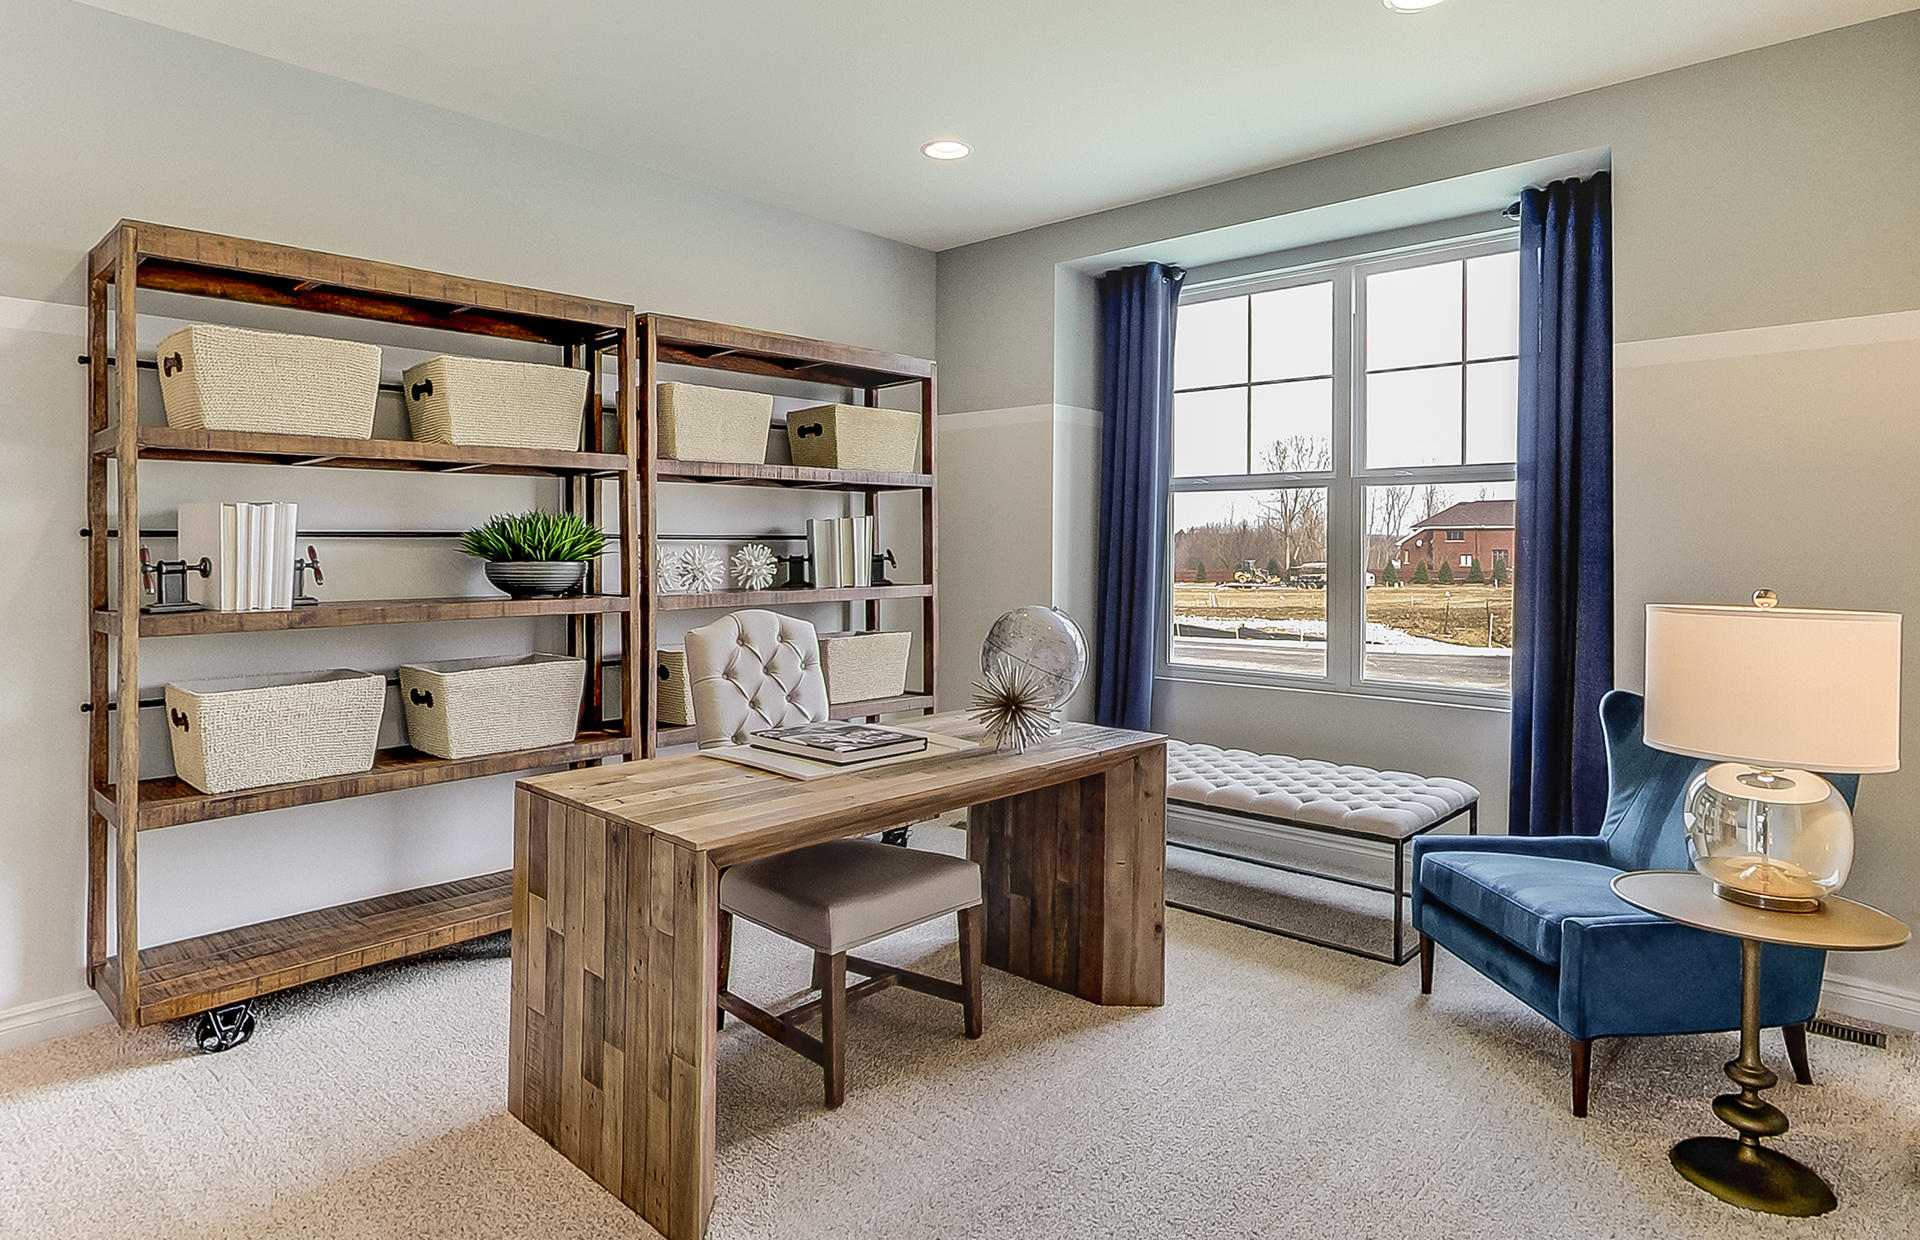 Rathmor Park by Pulte Homes image 4